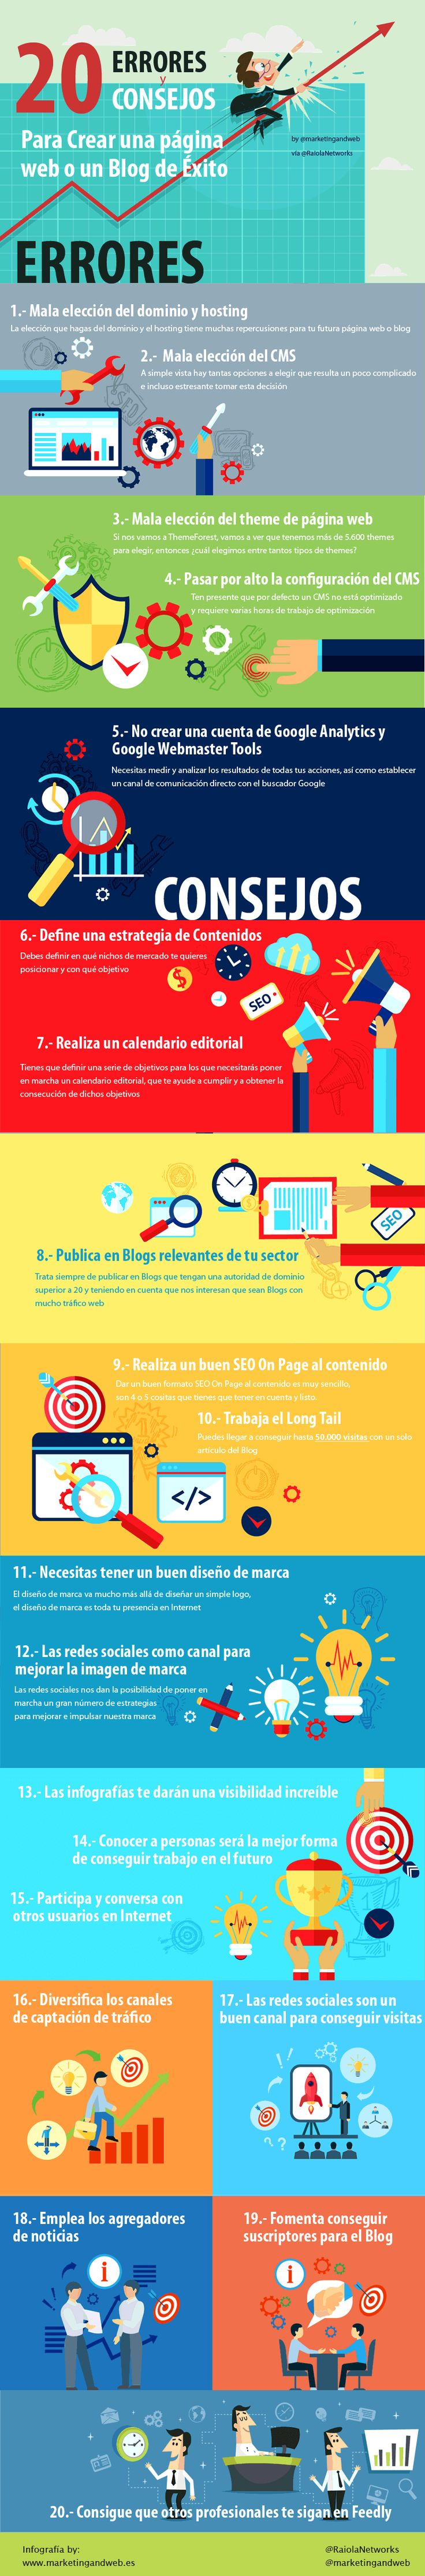 20 errores y consejos para crear una Web/Blog de éxito #infografia #marketing